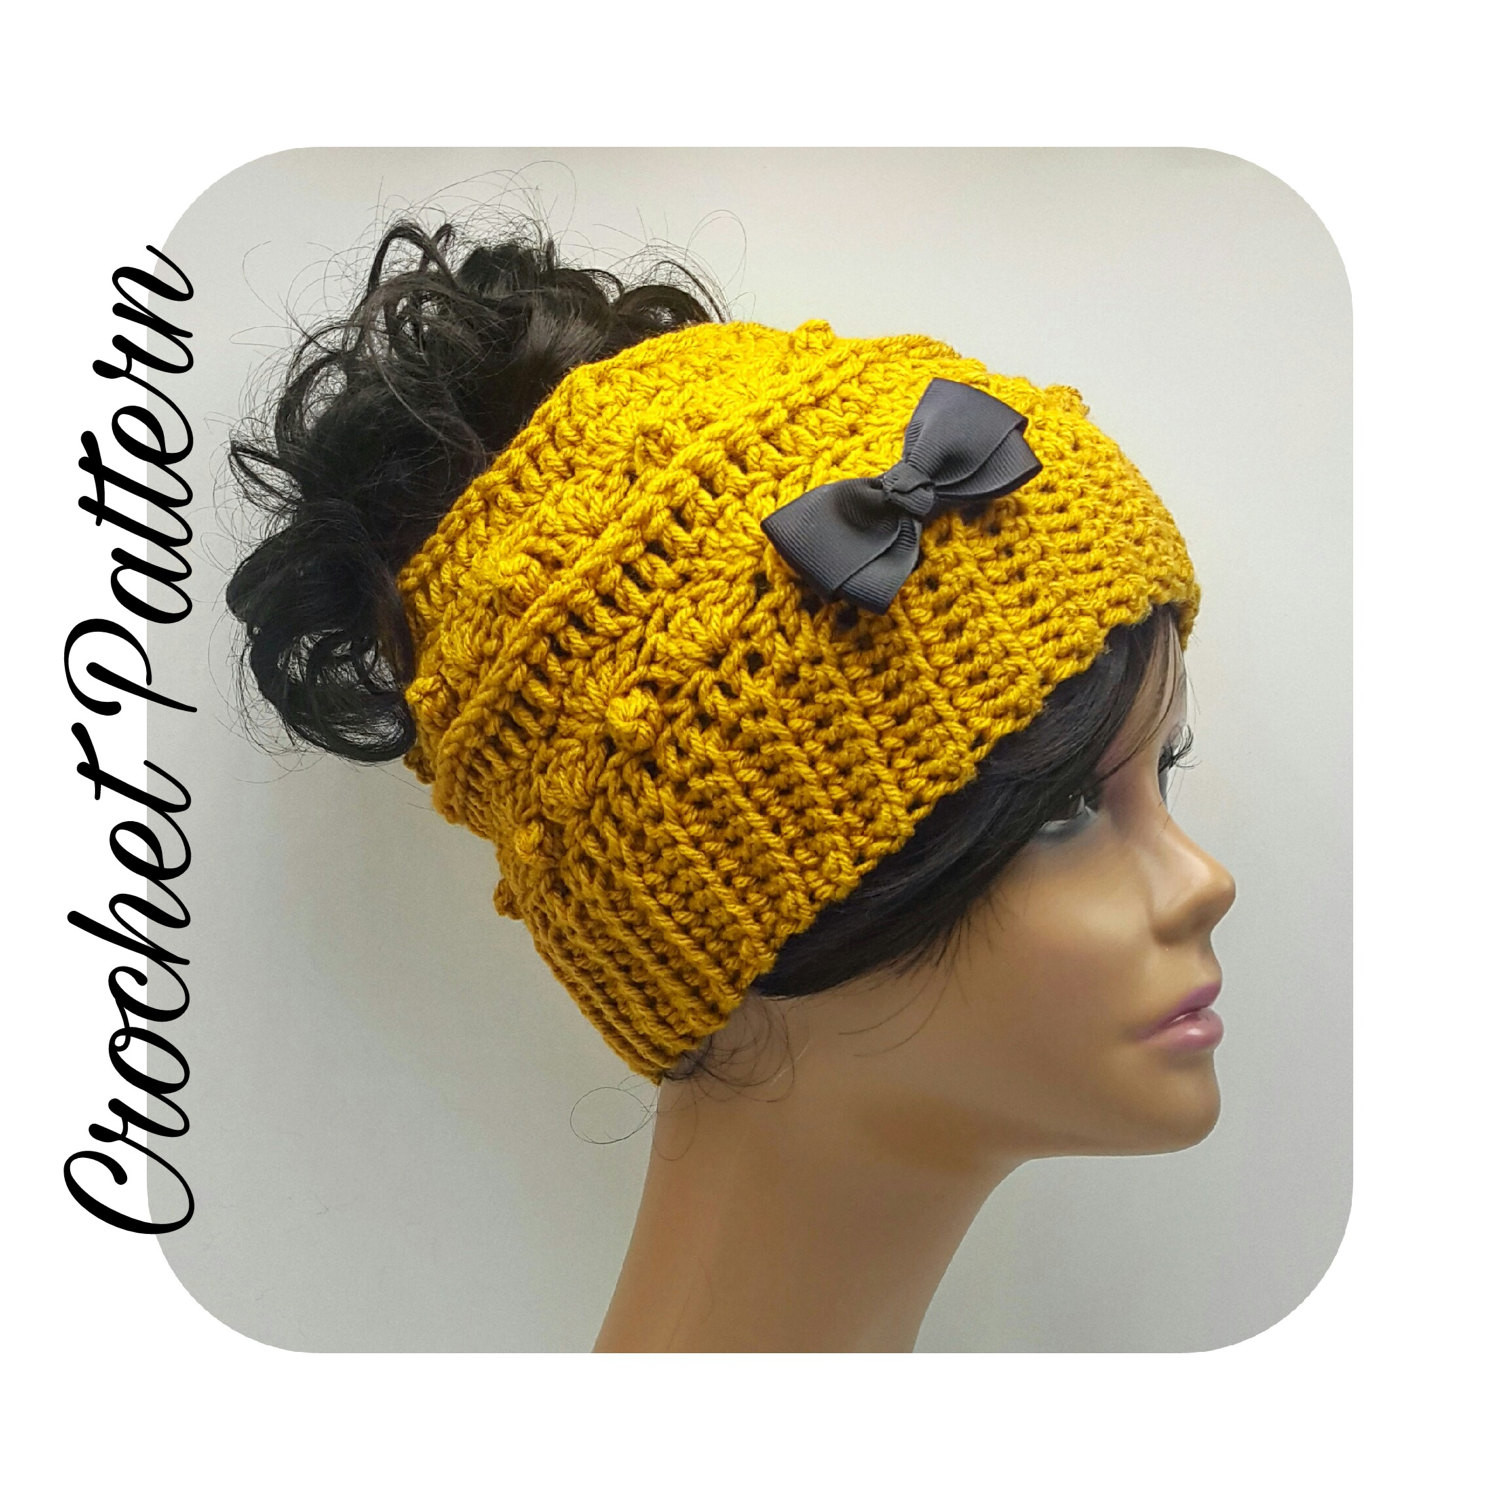 Crochet Messy Bun Beanie Awesome Crochet Pattern Messy Bun Beanie Ponytail Beanie Crochet Of New 43 Photos Crochet Messy Bun Beanie